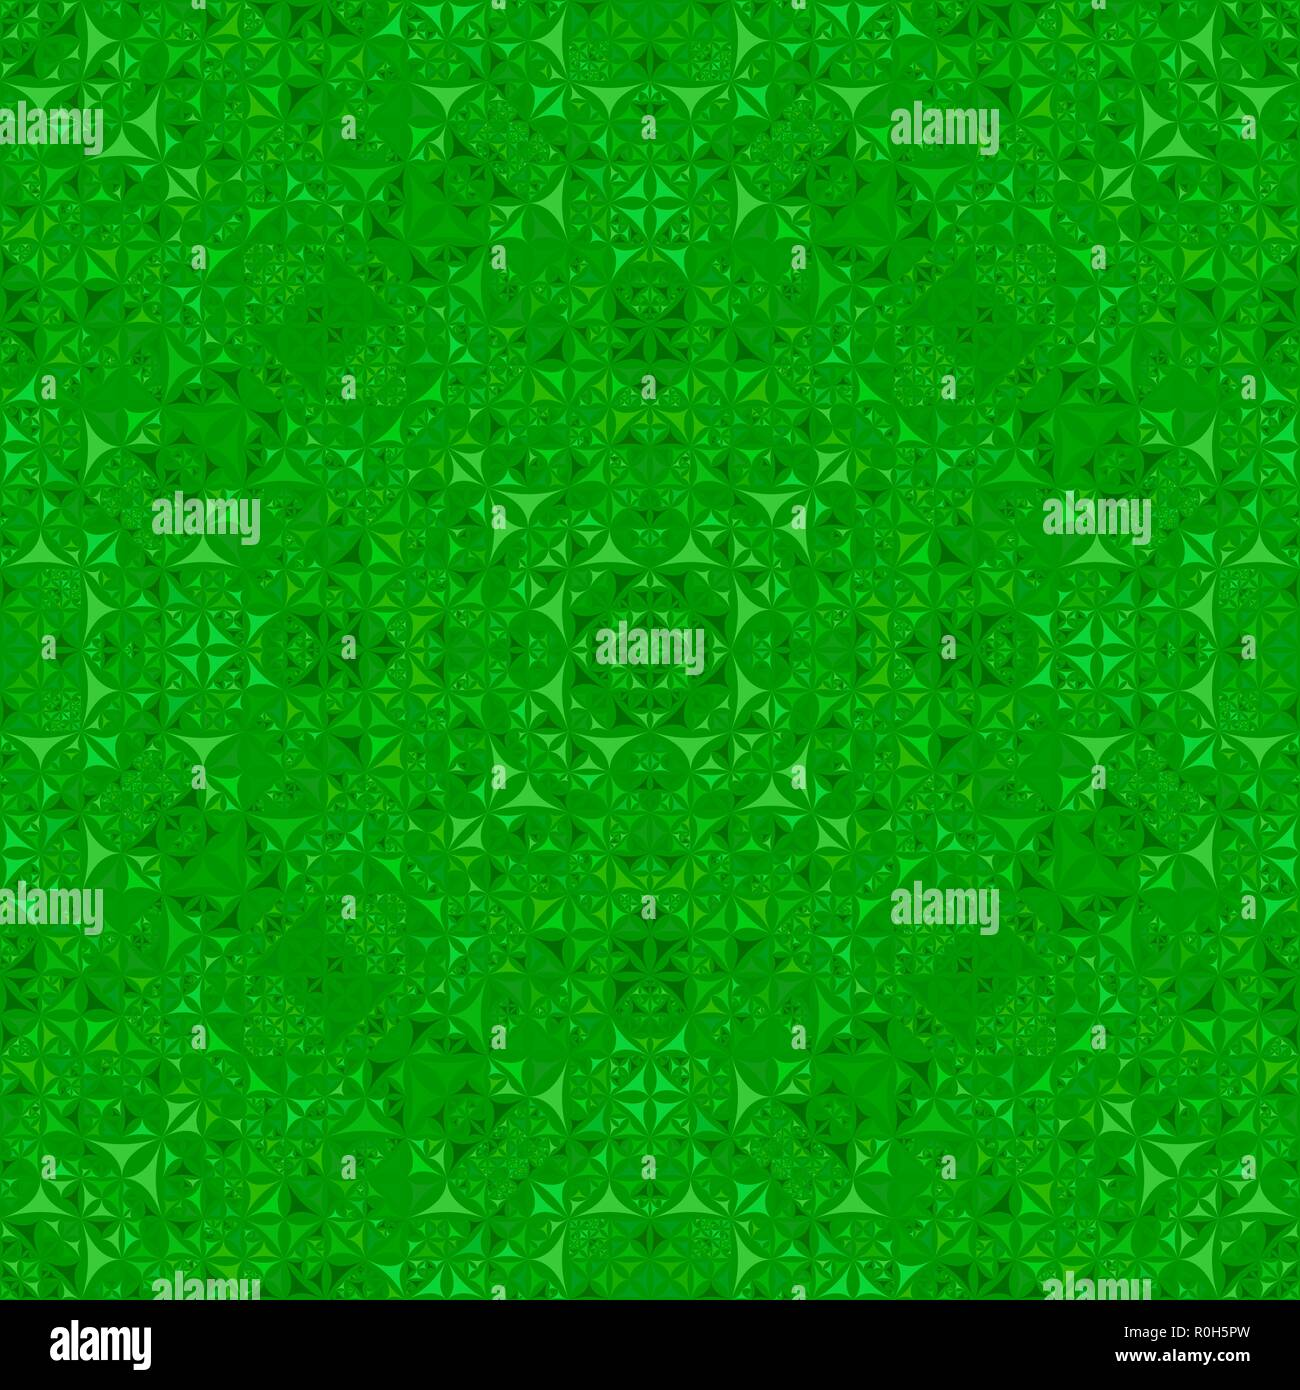 Green Seamless Abstract Curved Triangle Kaleidoscope